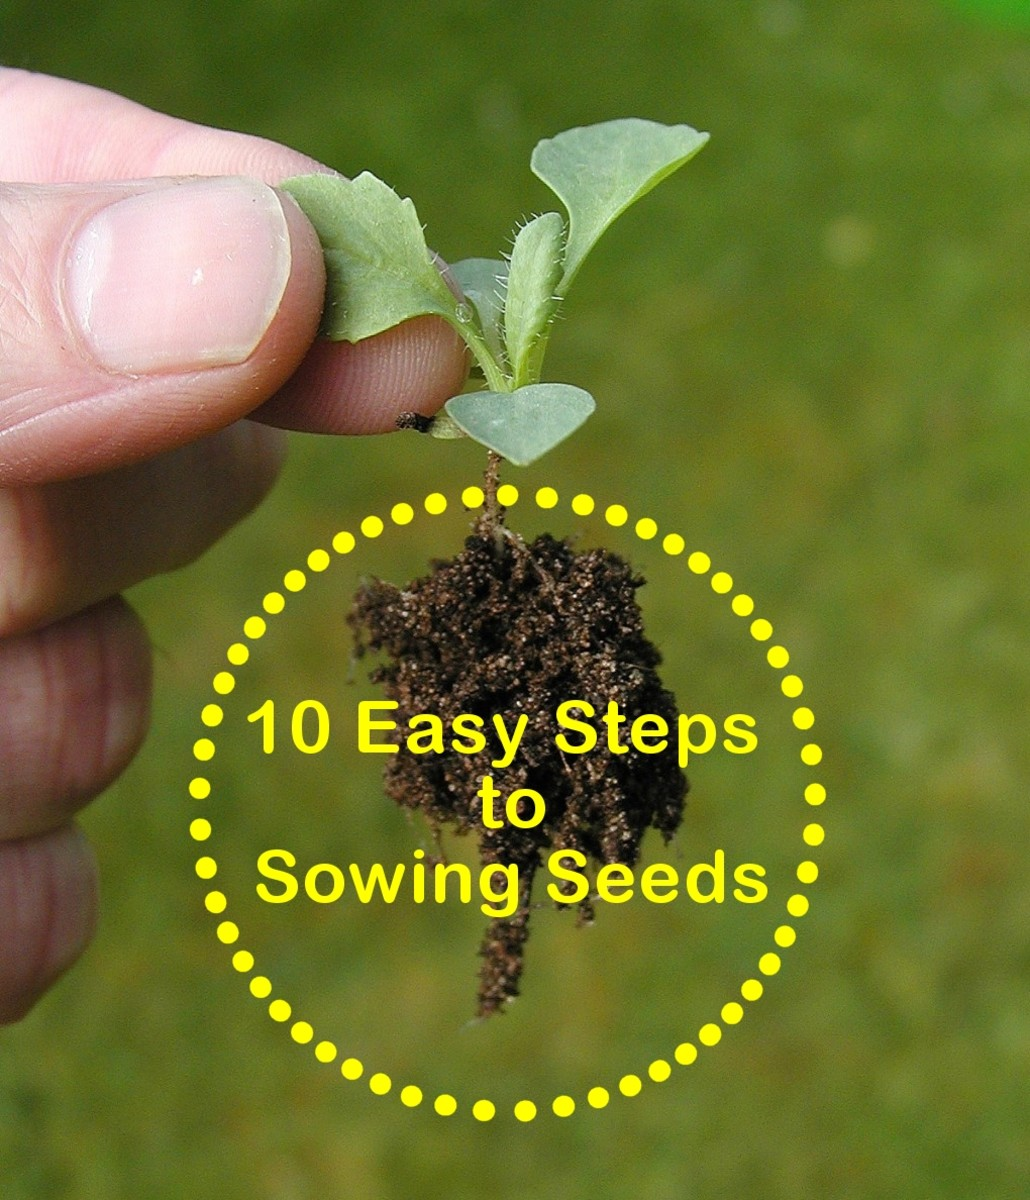 hight resolution of gardening for beginners 10 easy steps to sowing seeds